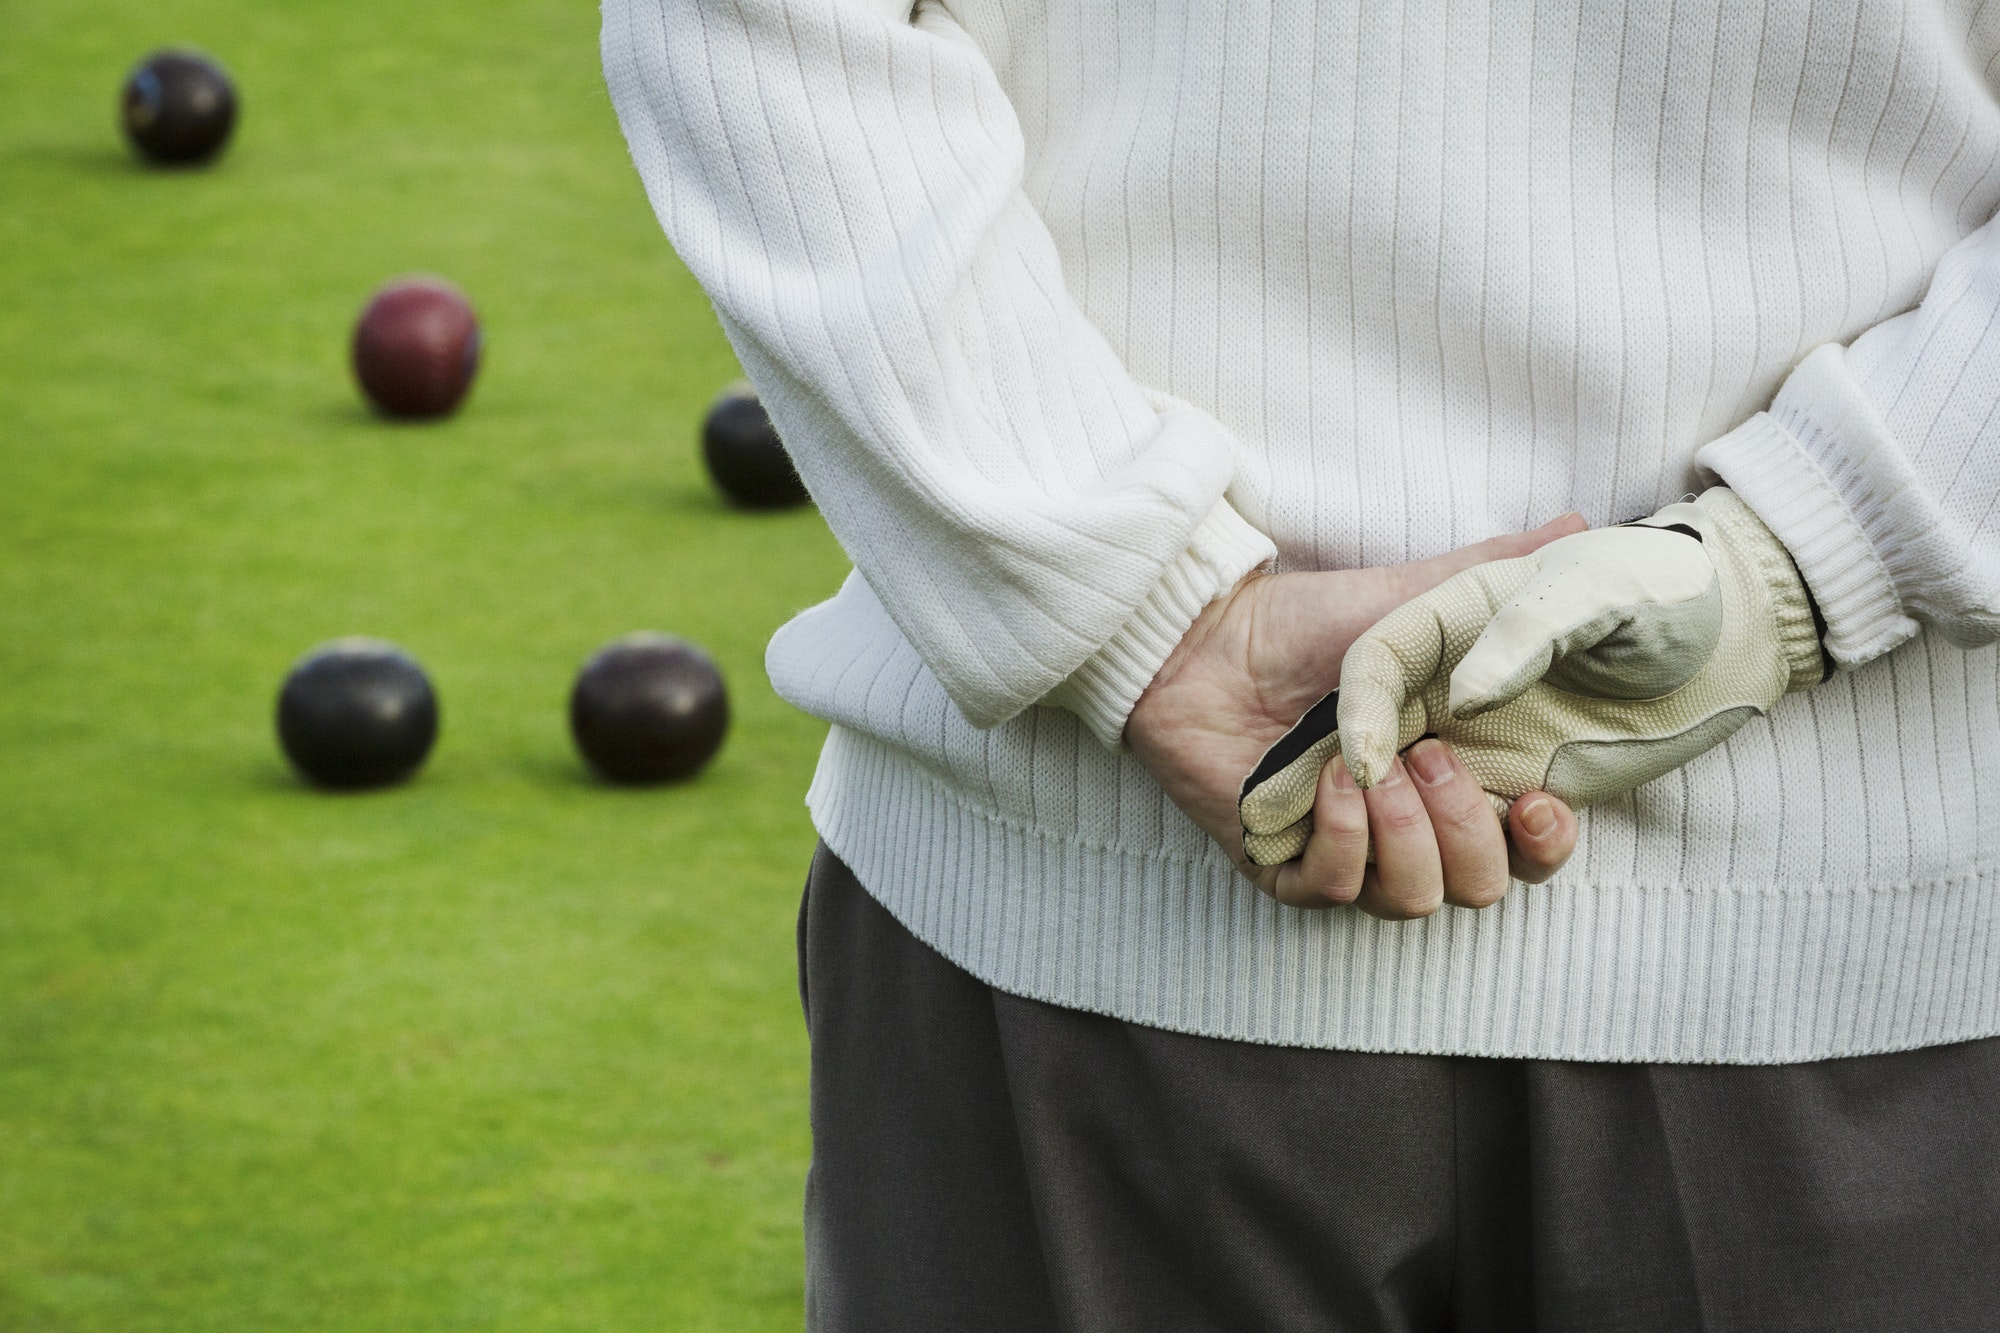 Rear view, a man standing with his hands clasped behind him, one hand in a playing glove, at a lawn